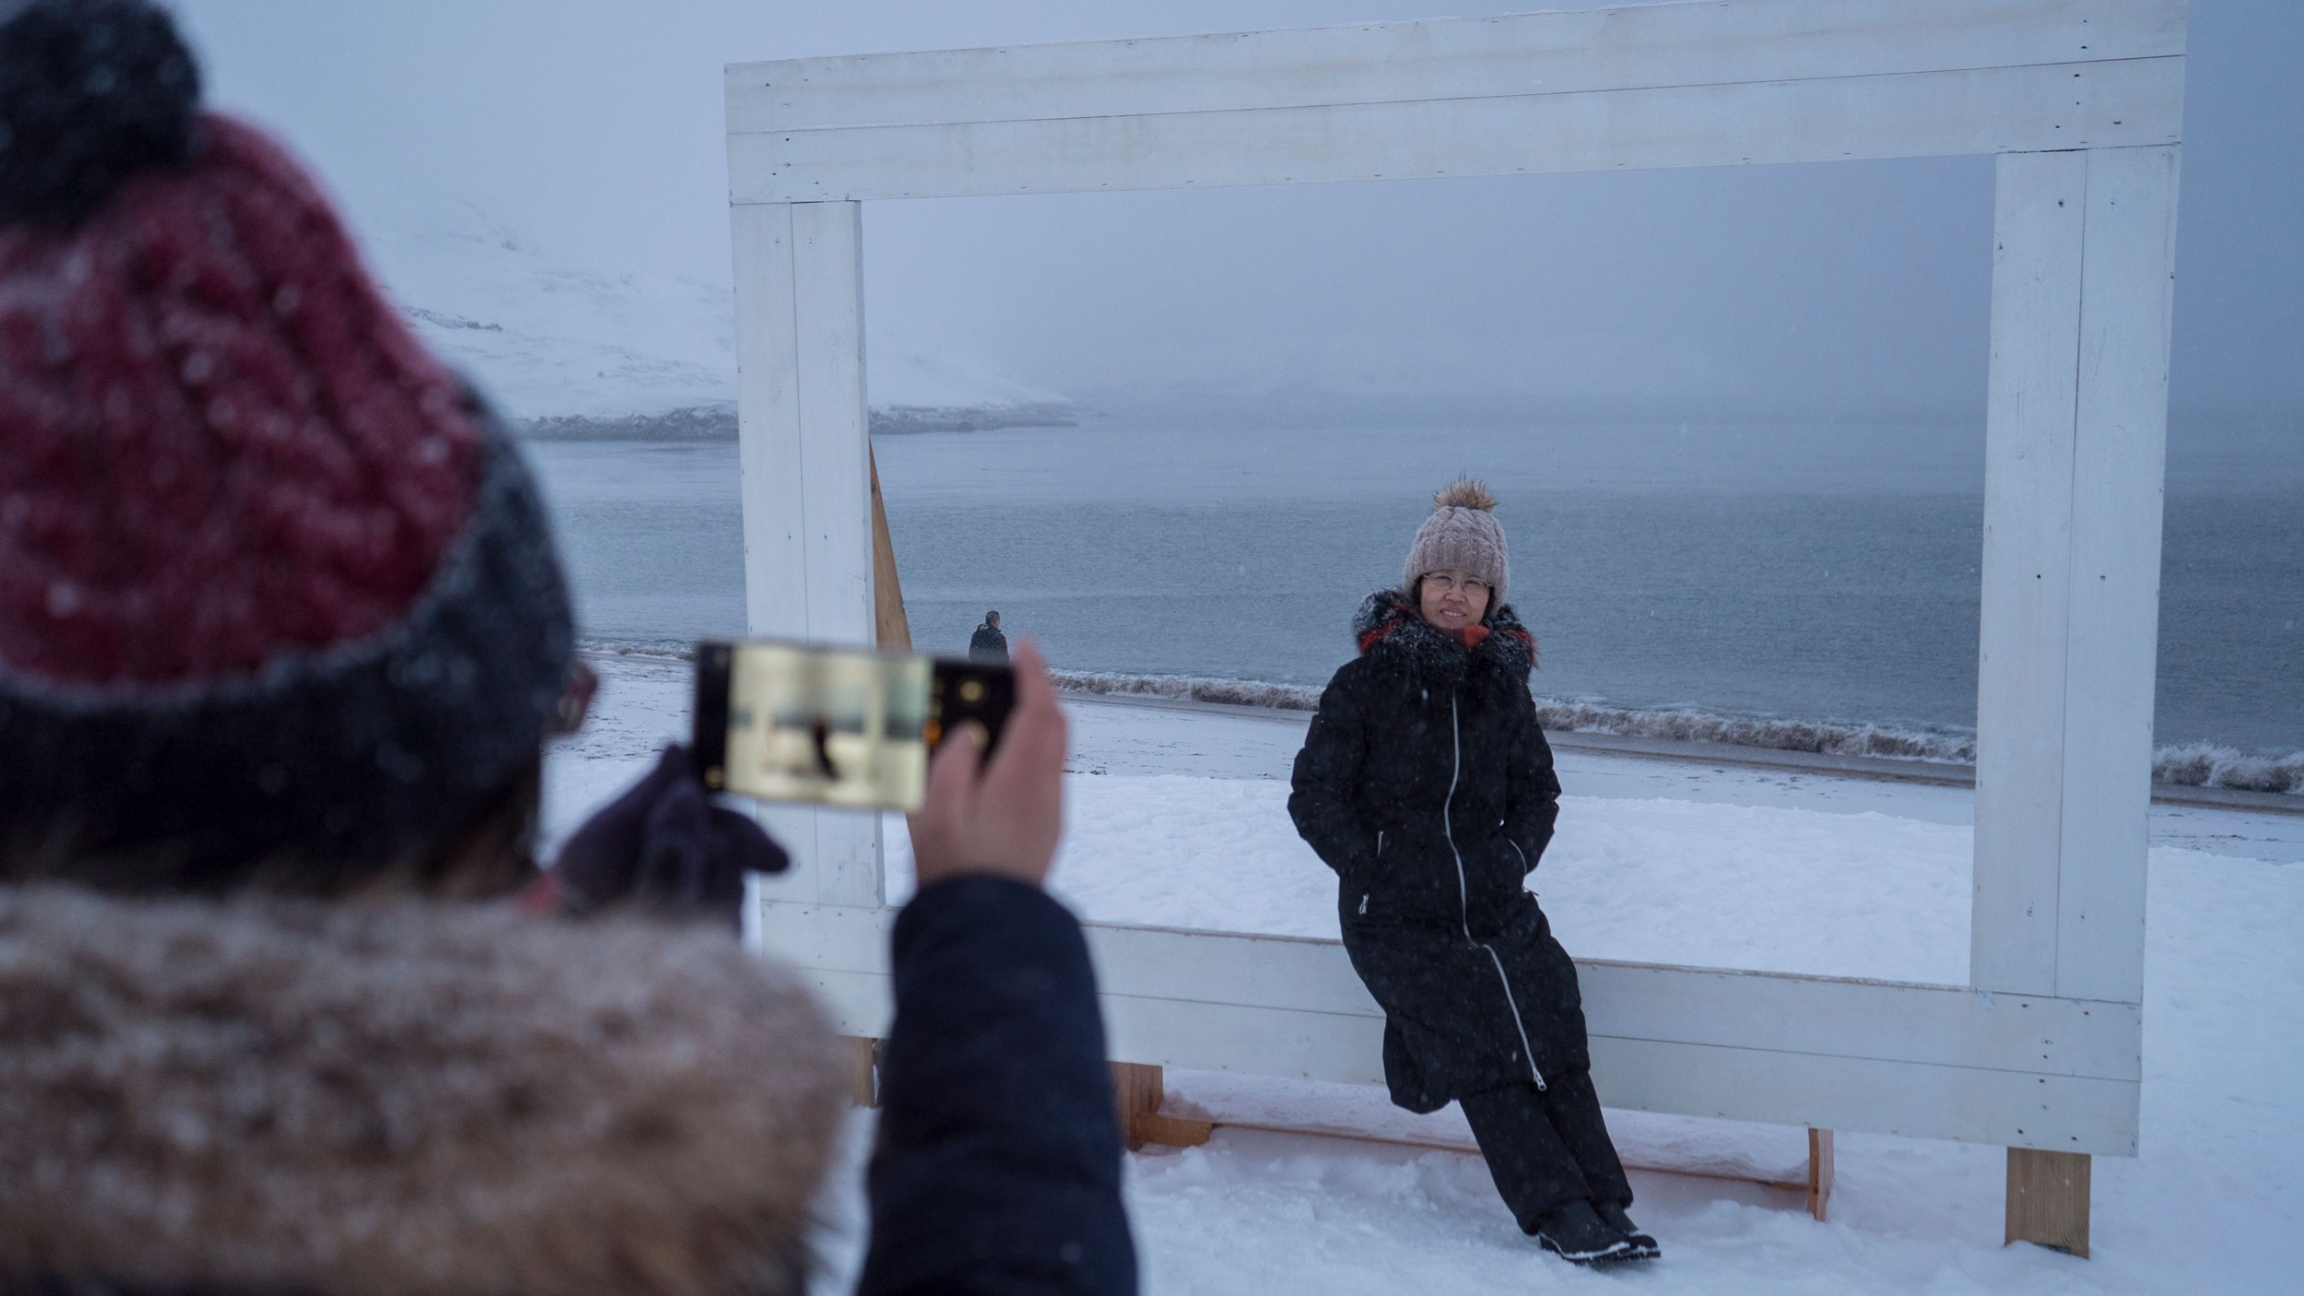 A woman is shown sitting a large frame with the Barents Sea in the background.